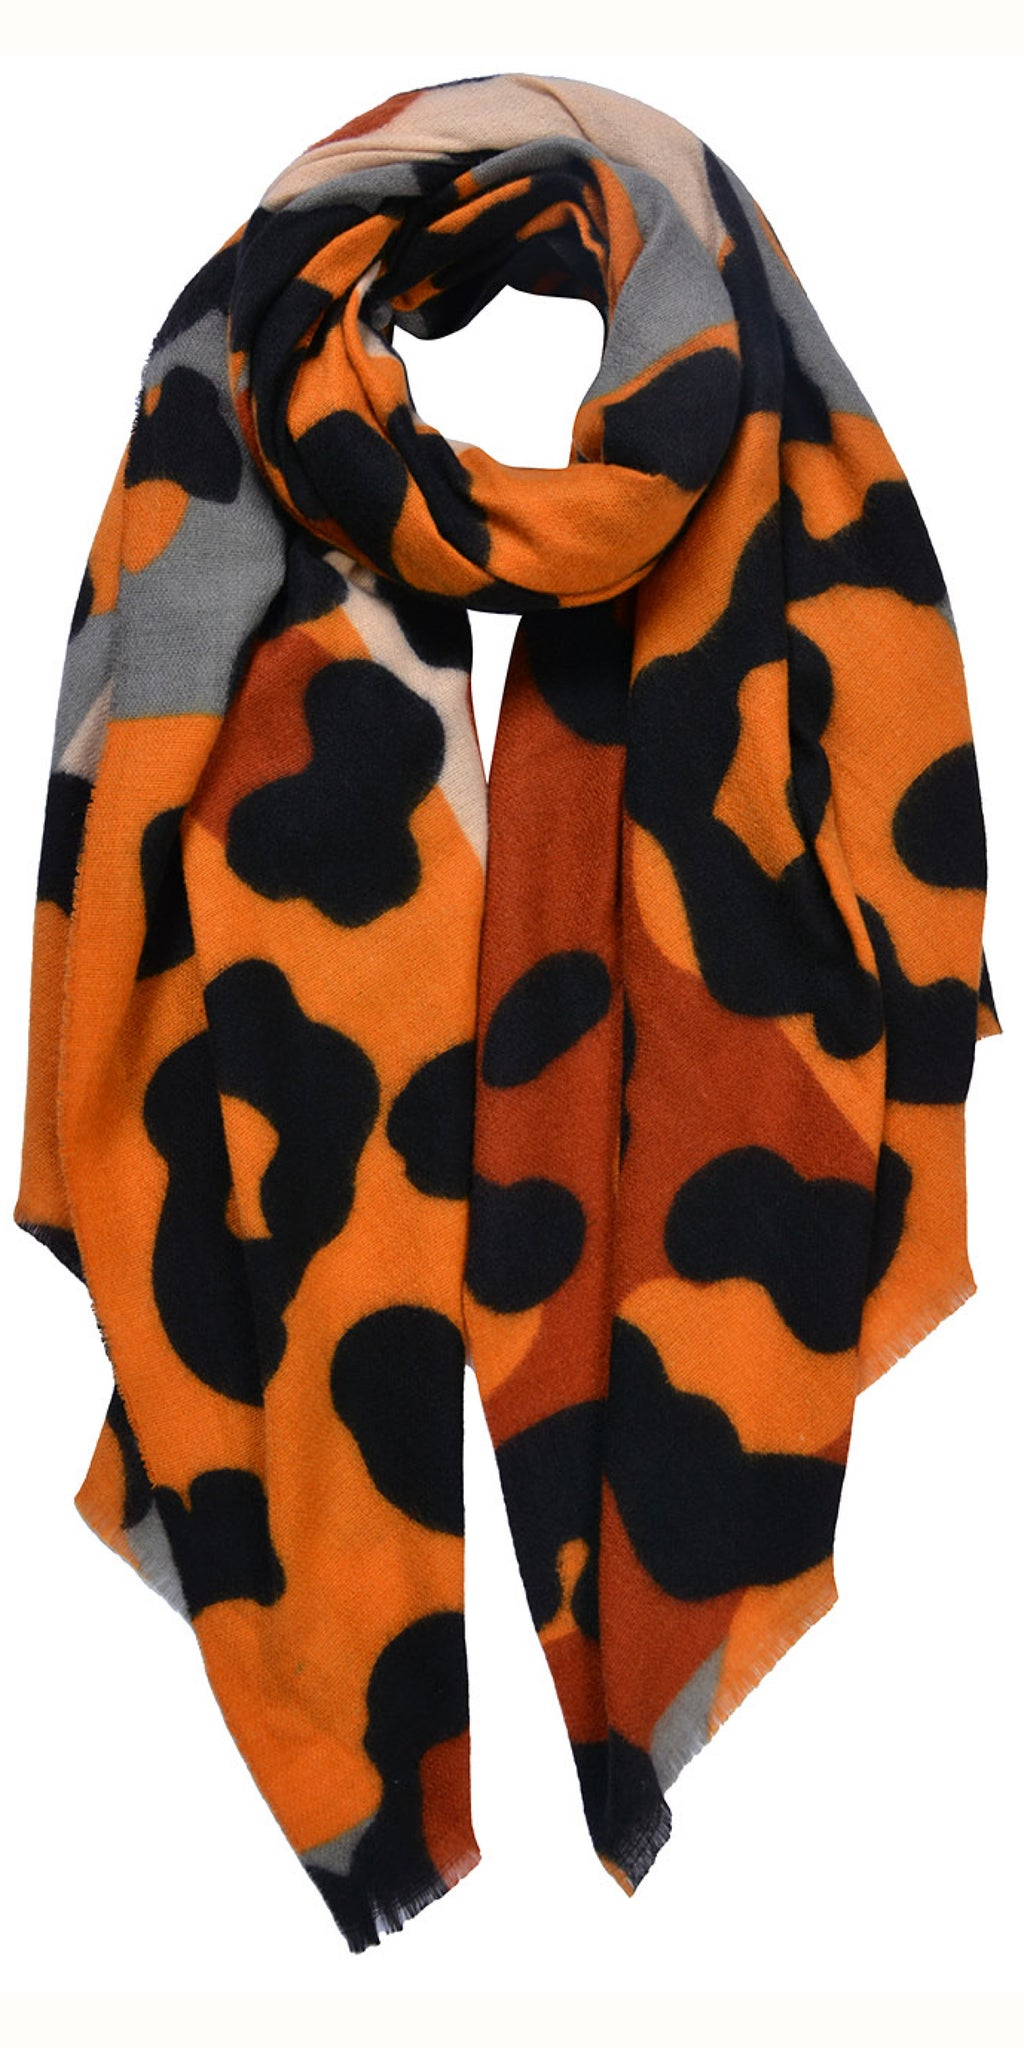 Cosy Vibrant Animal Scarf in Orange